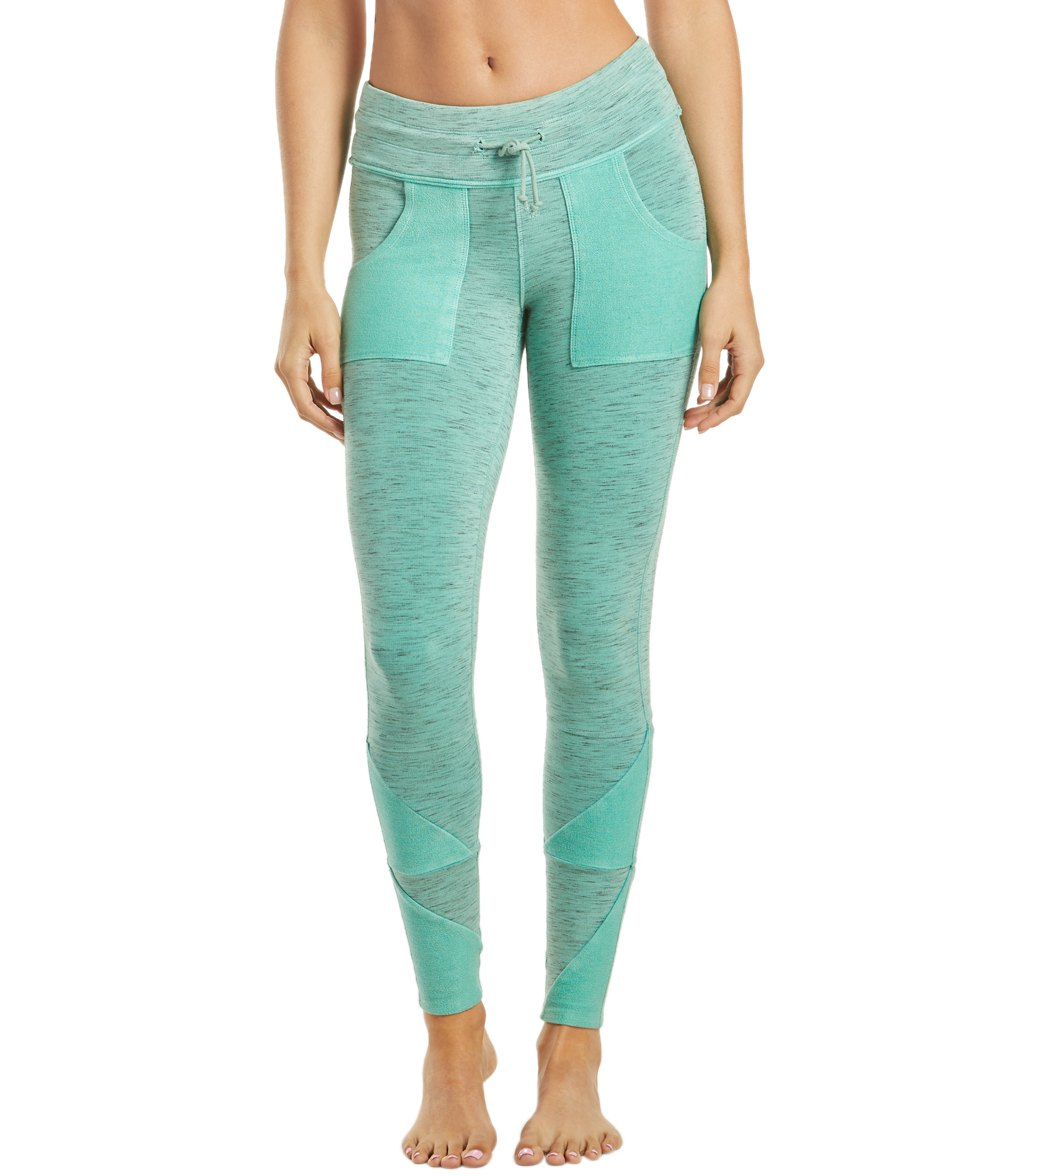 Free People Movement Kyoto Workout Leggings - Blue Green Cotton